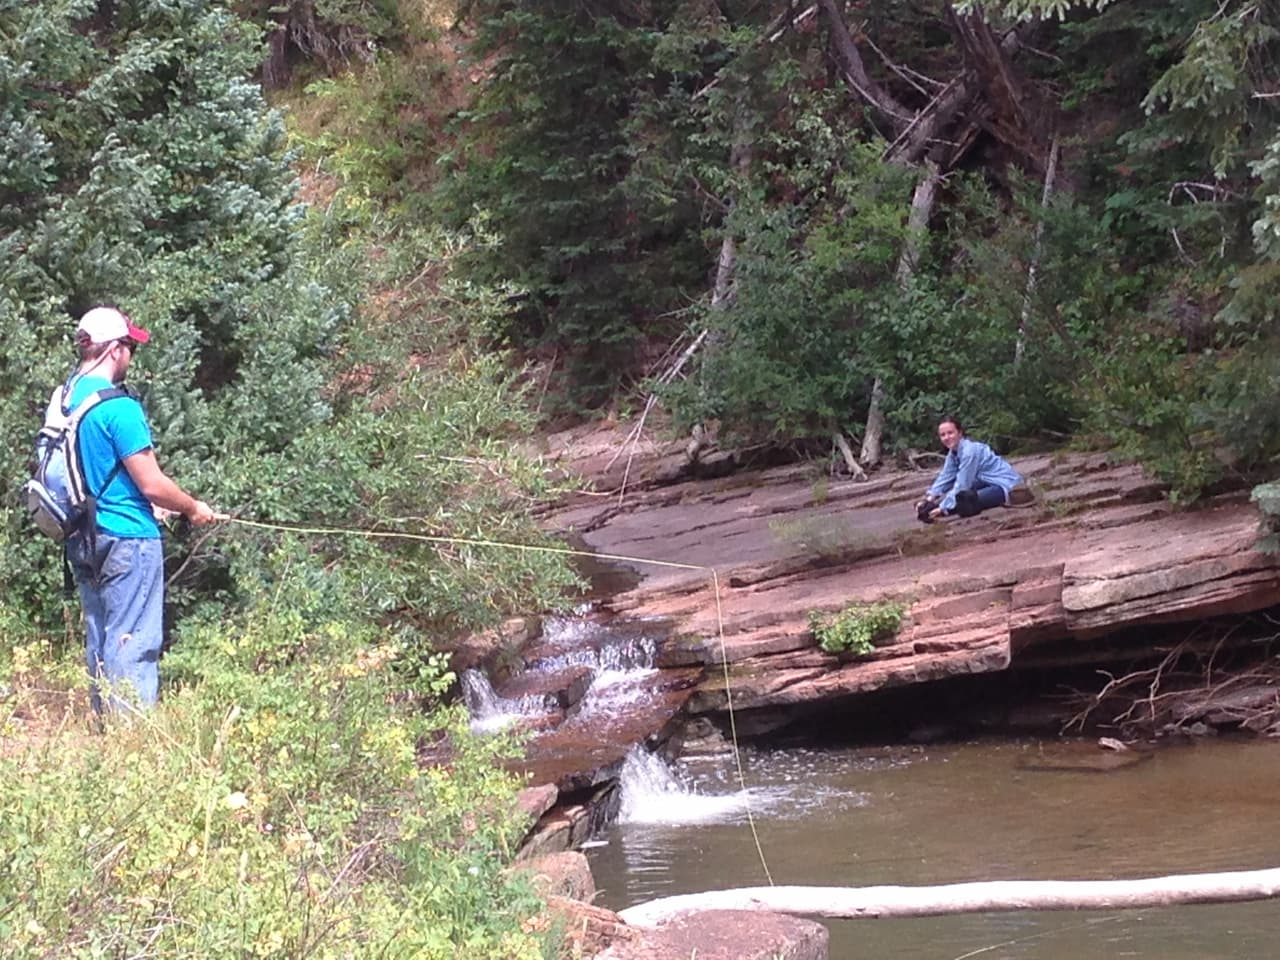 Guided Fly Fishing in Lost Creek